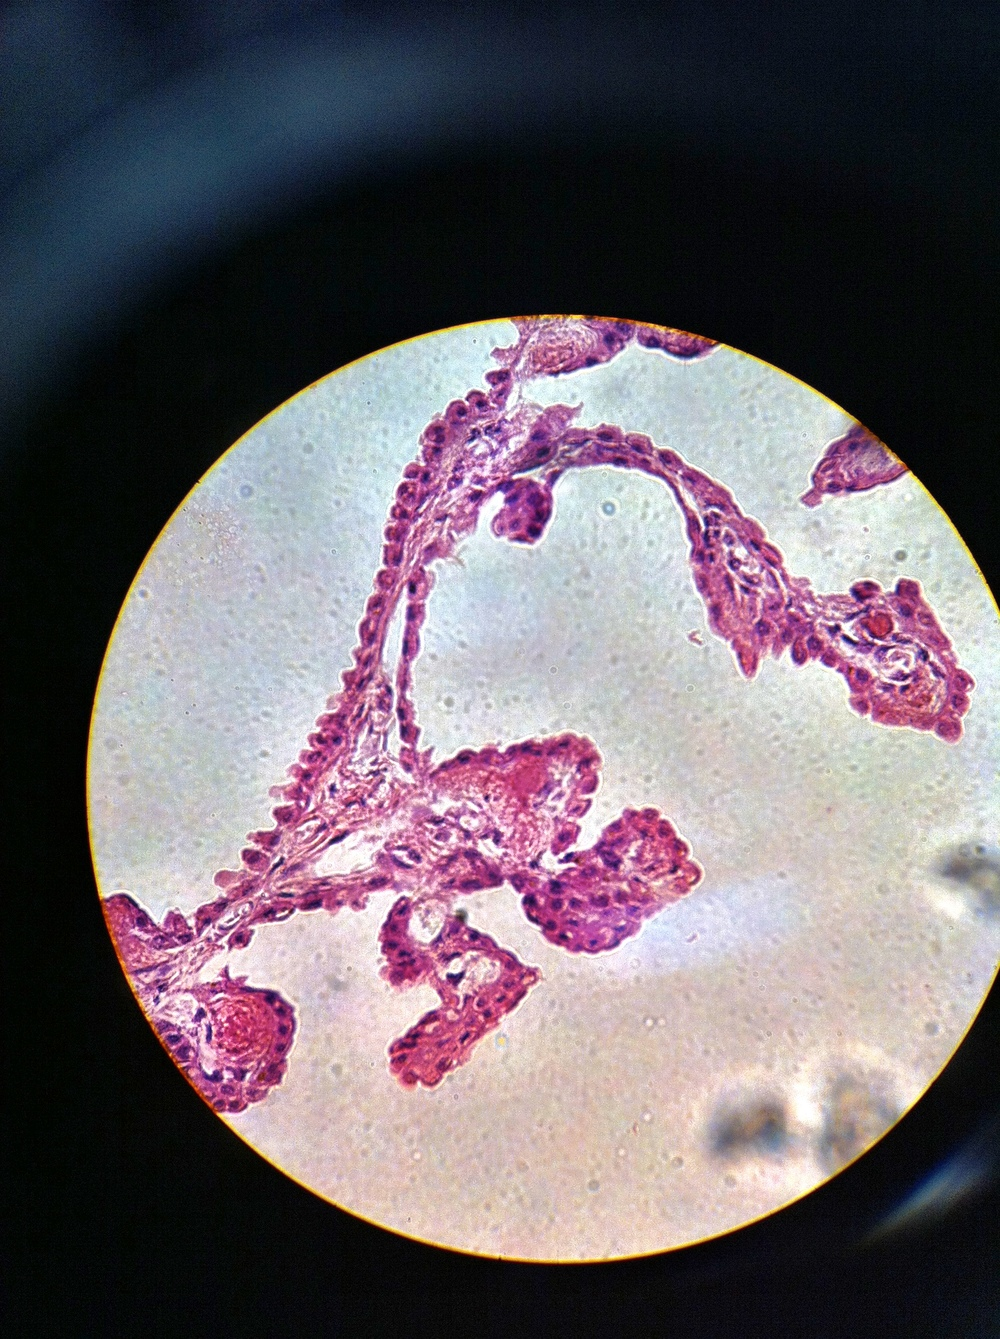 Ependymal Cells 400X